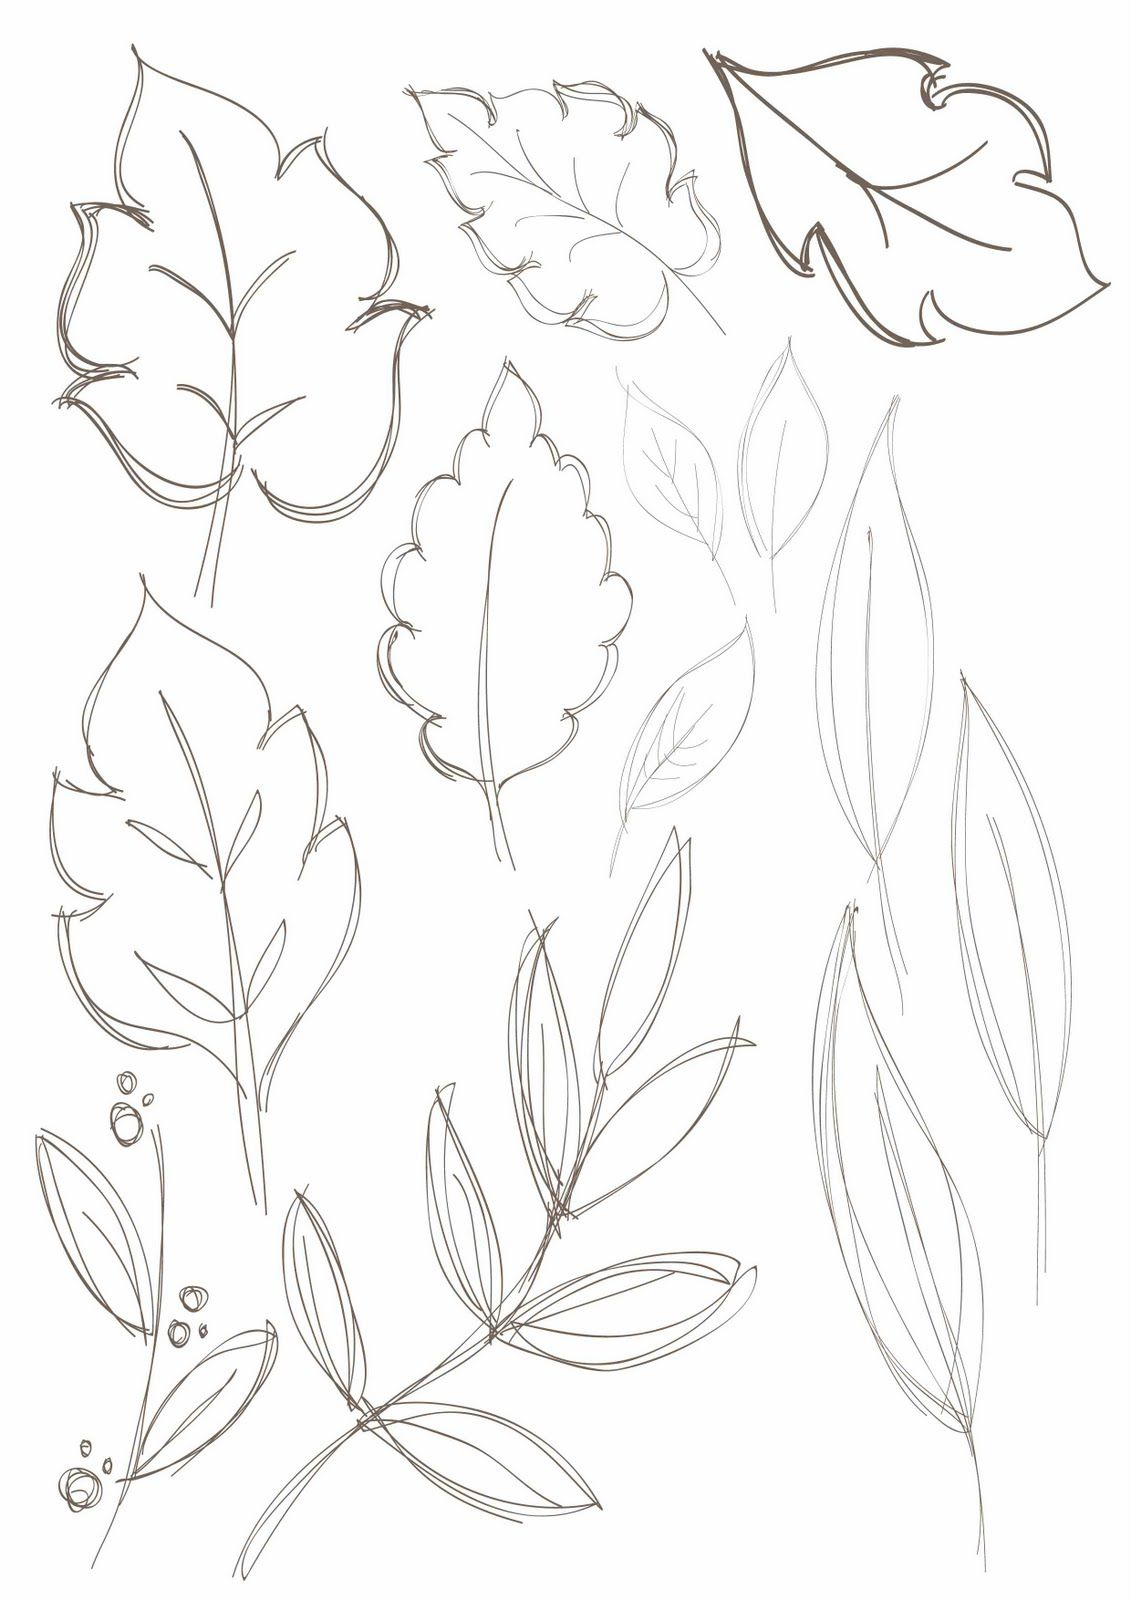 Leafy leaf drawing floral drawing nature drawing plant drawing painting drawing